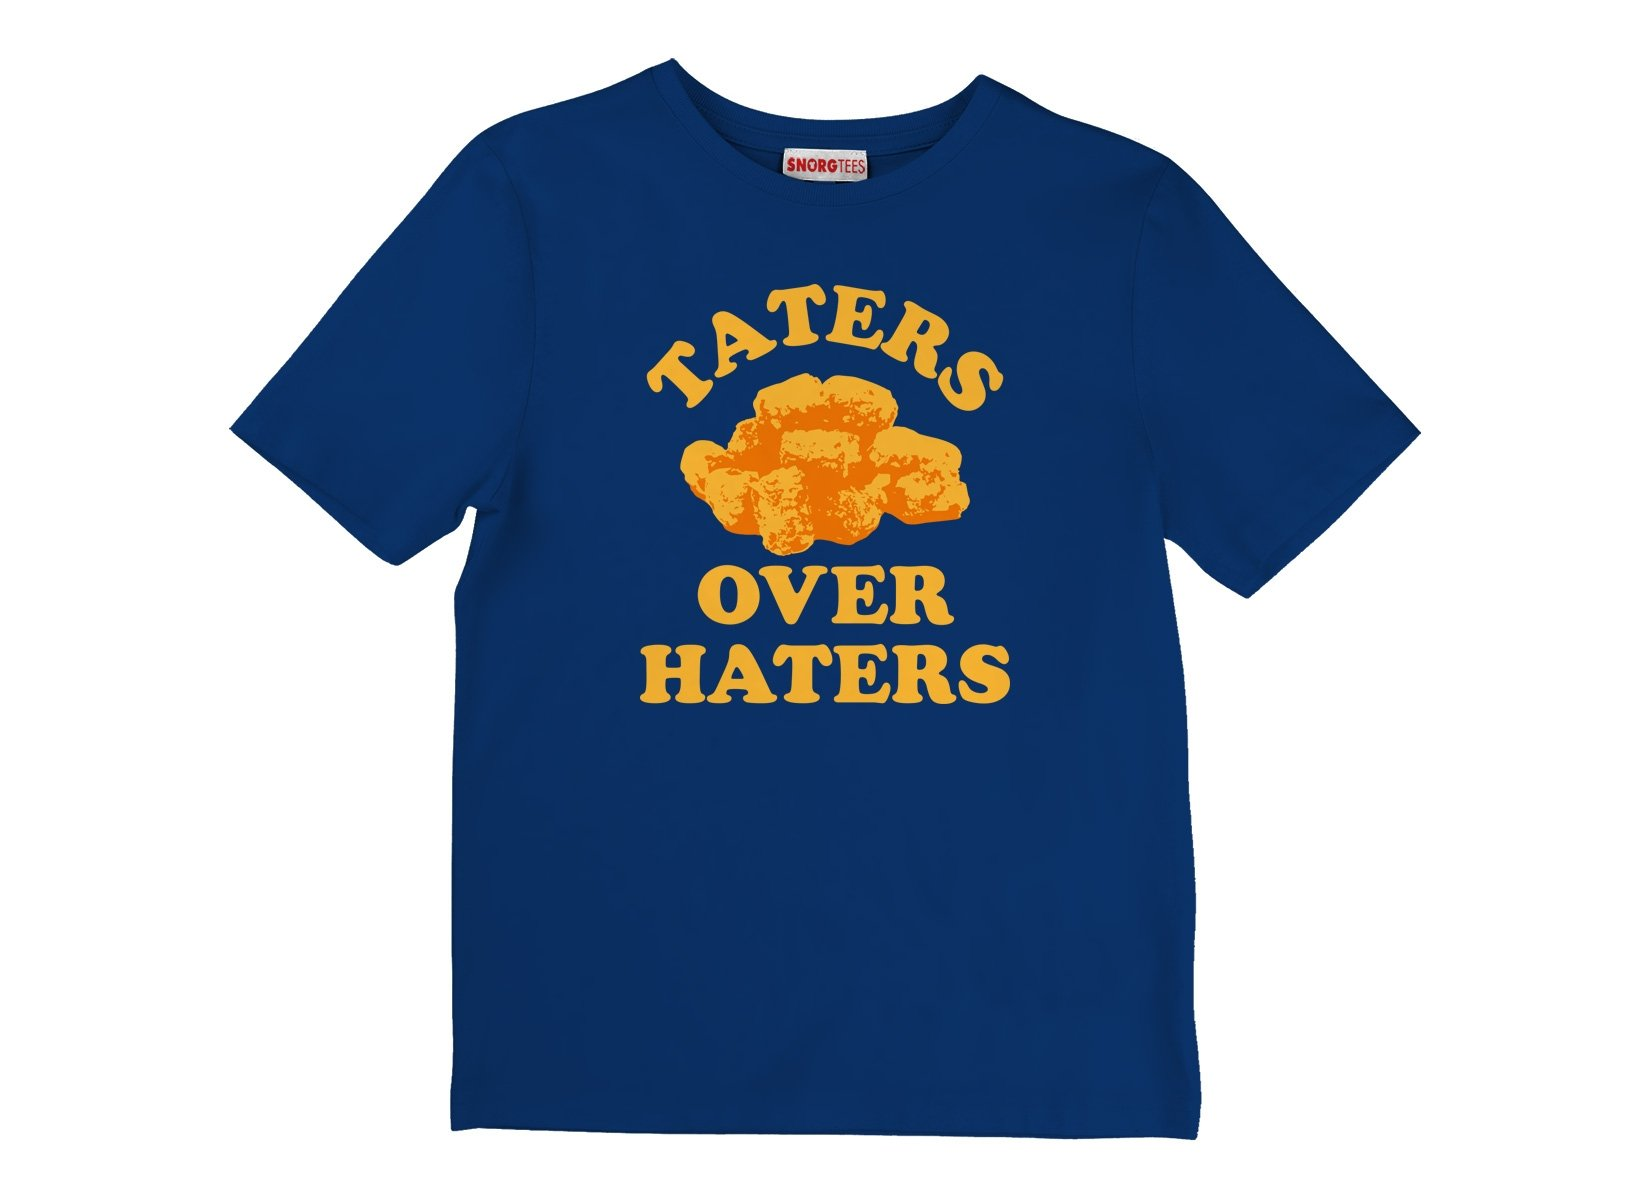 Taters Over Haters on Kids T-Shirt